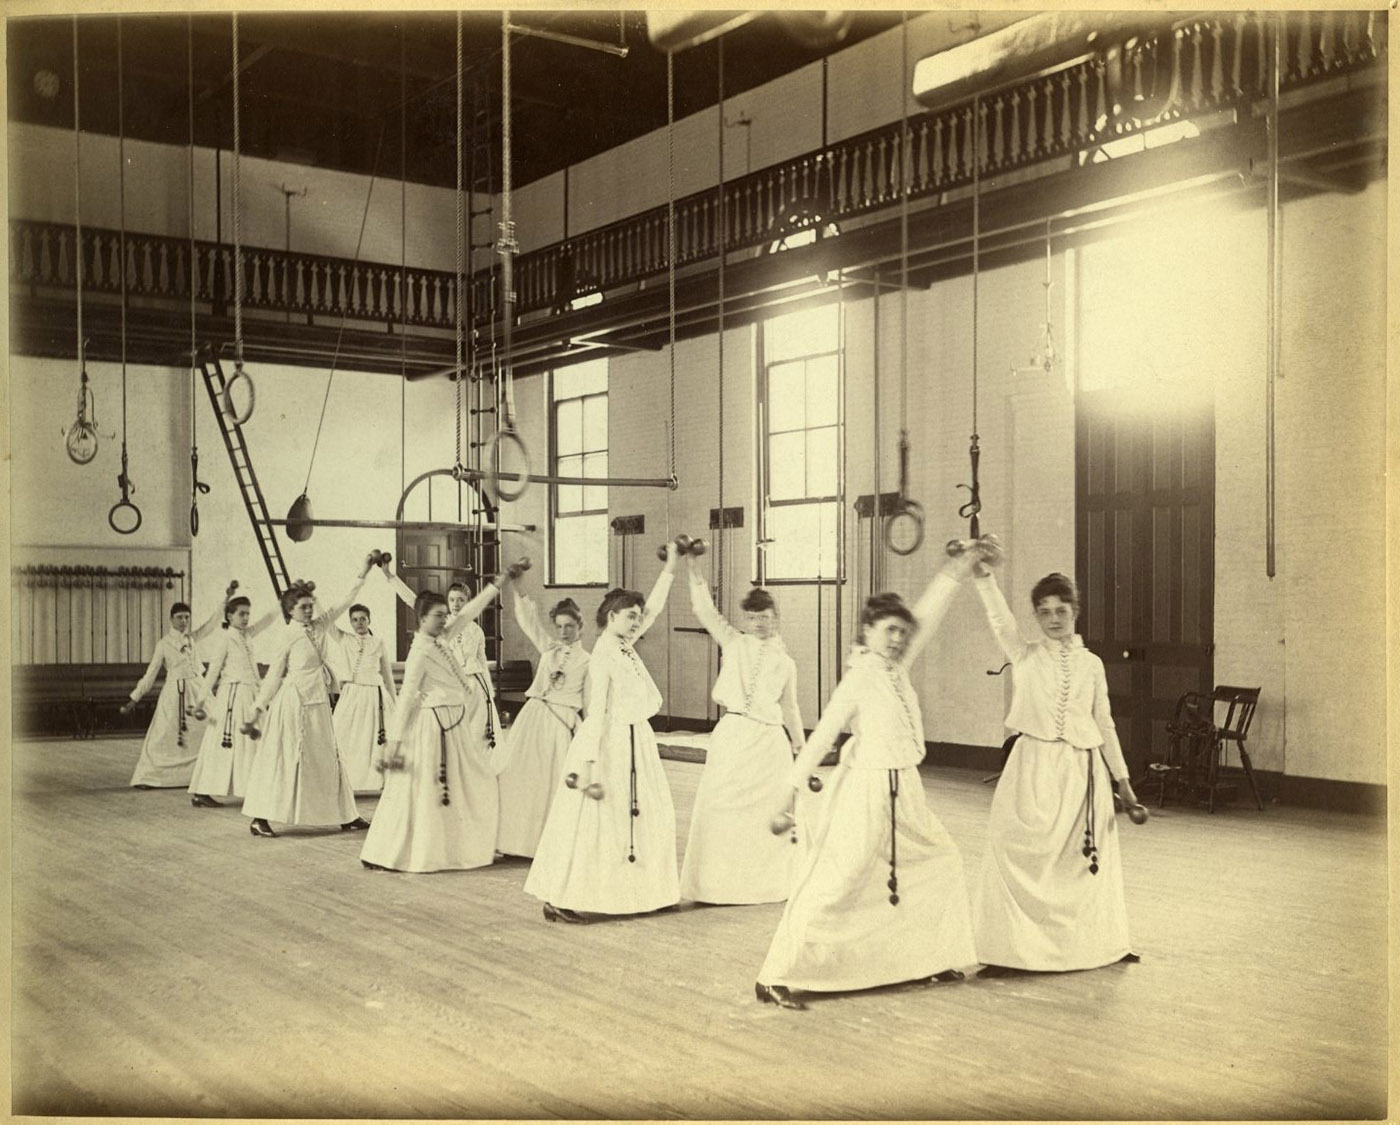 Physical education class for women, 1888